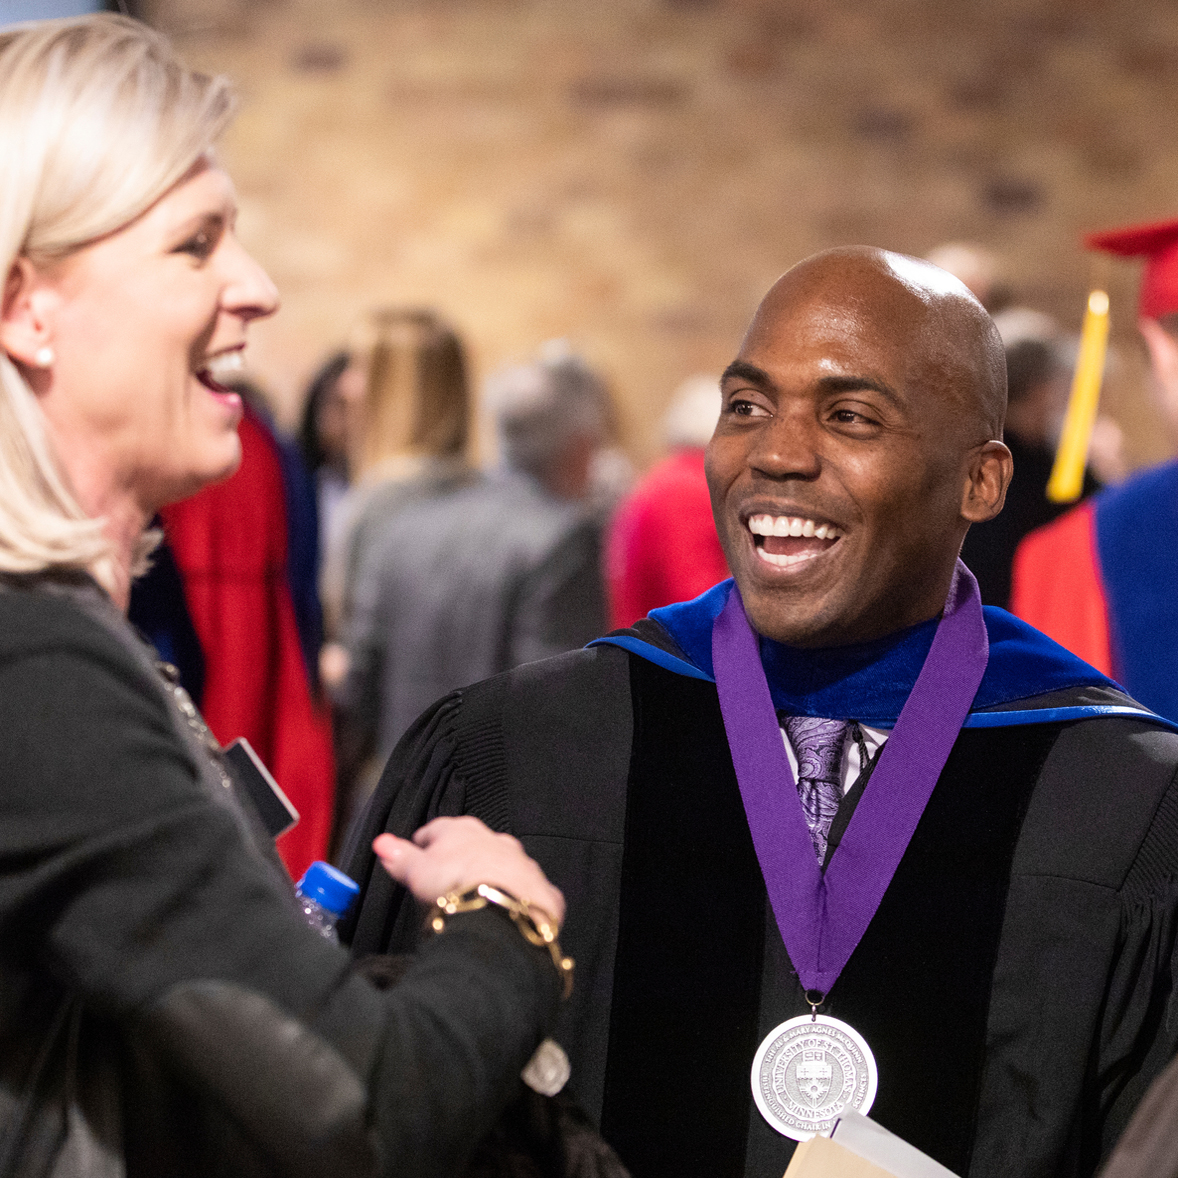 Dean Williams smiles while greeting someone at a graduation ceremony